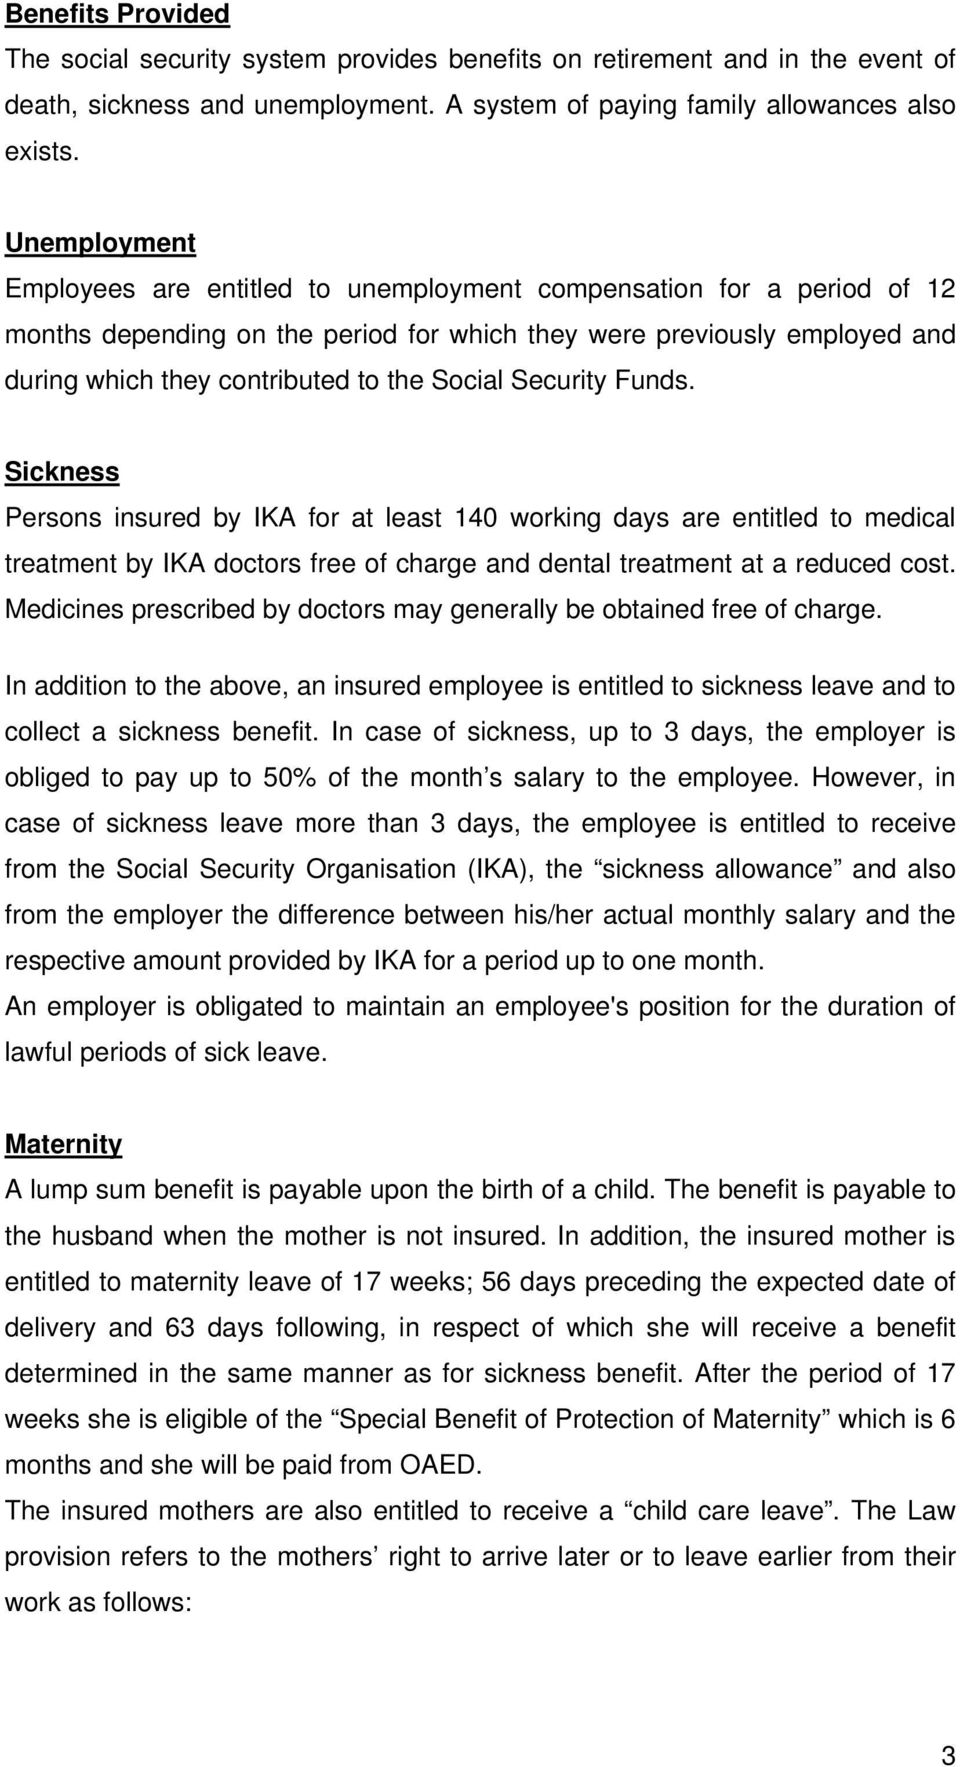 Social Security Funds. Sickness Persons insured by IKA for at least 140 working days are entitled to medical treatment by IKA doctors free of charge and dental treatment at a reduced cost.